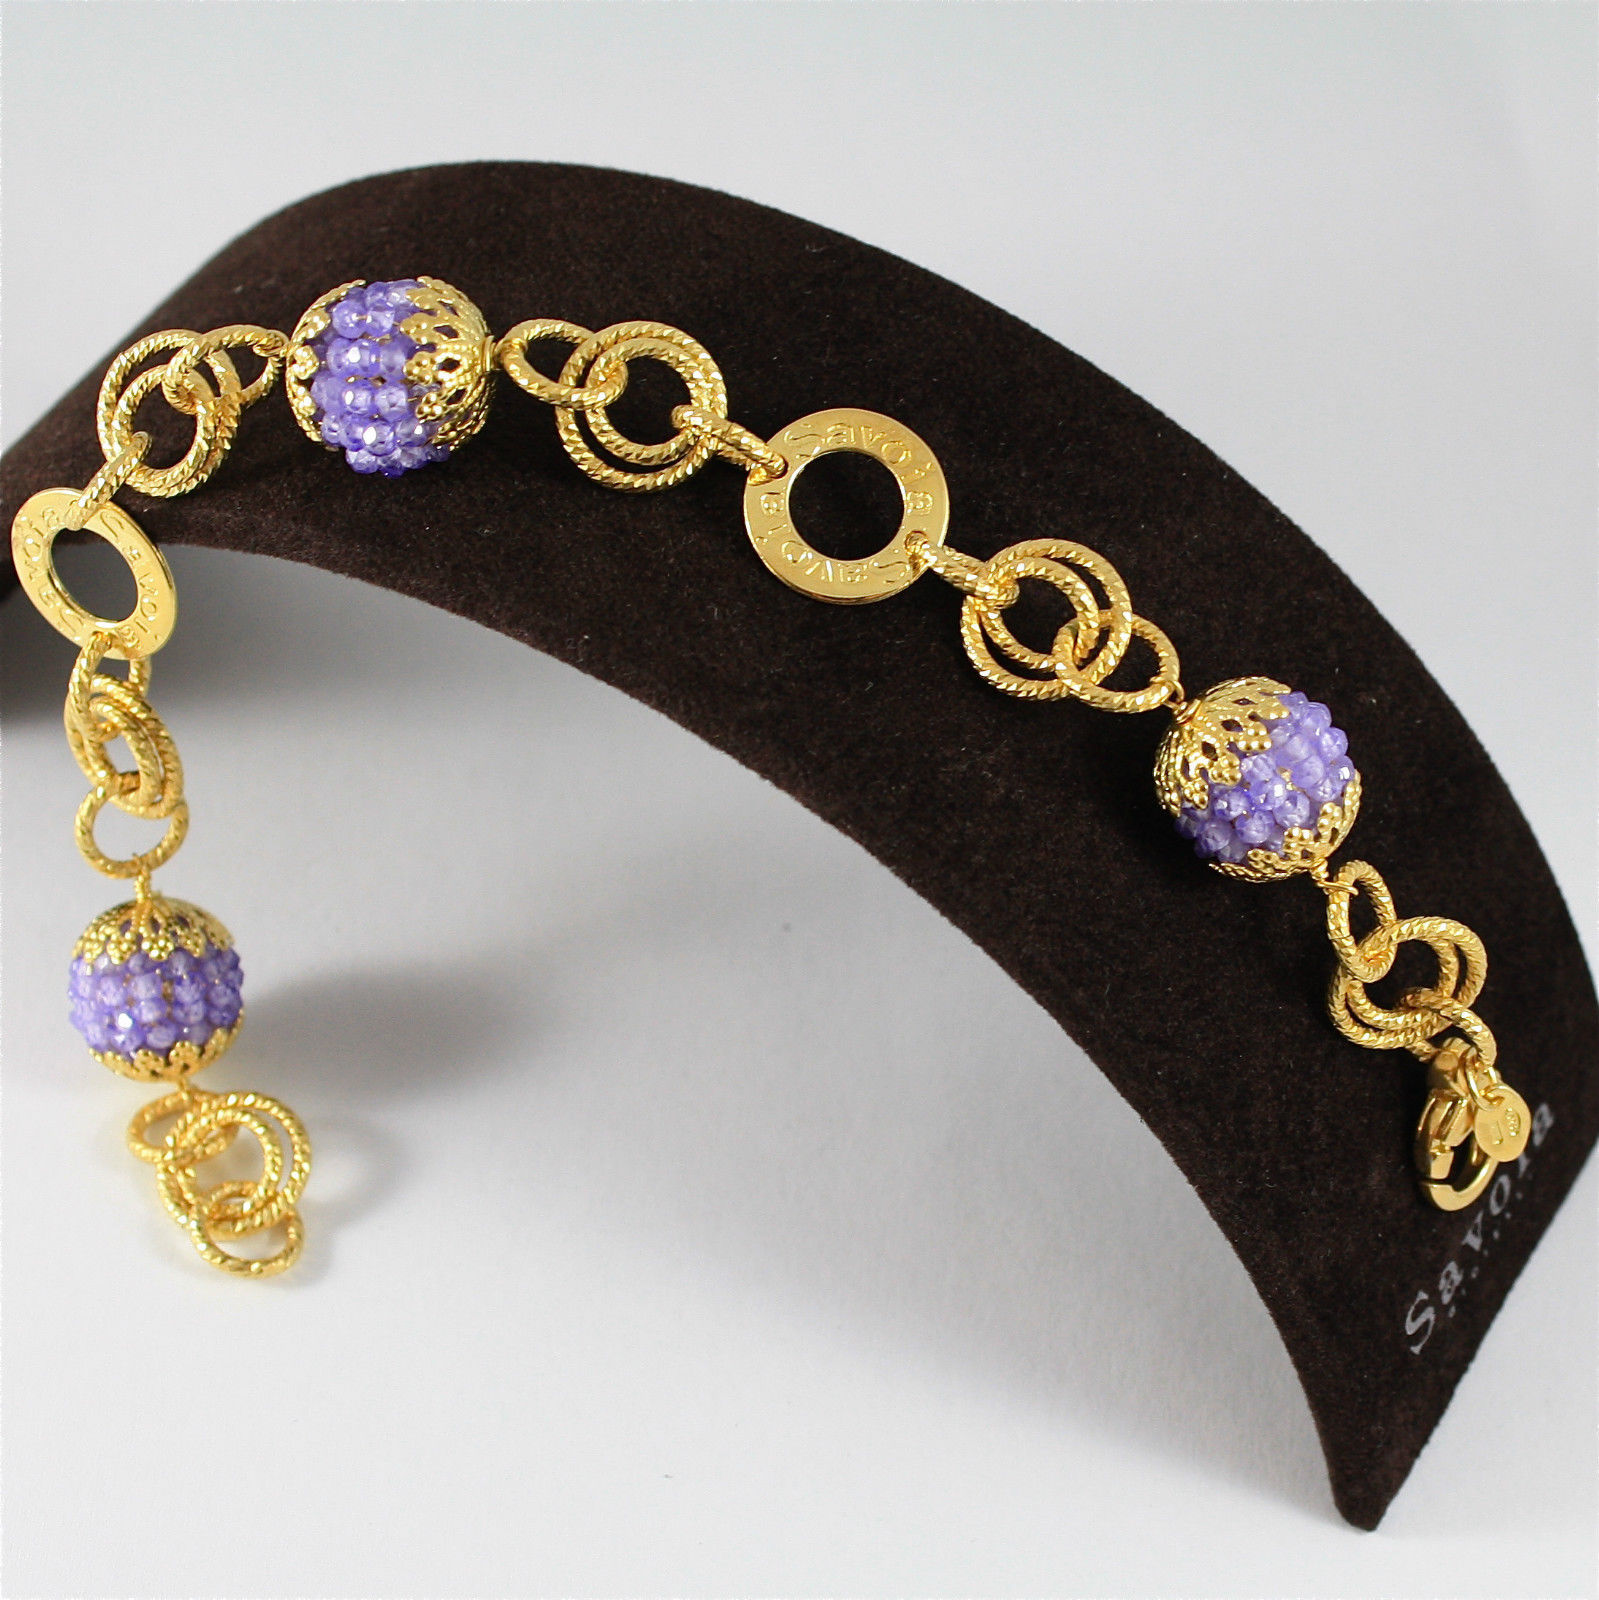 925 SILVER BRACELET, GOLD PL, FACETED AMETHYST, MADE IN ITALY BY SAVOIA JEWELS.